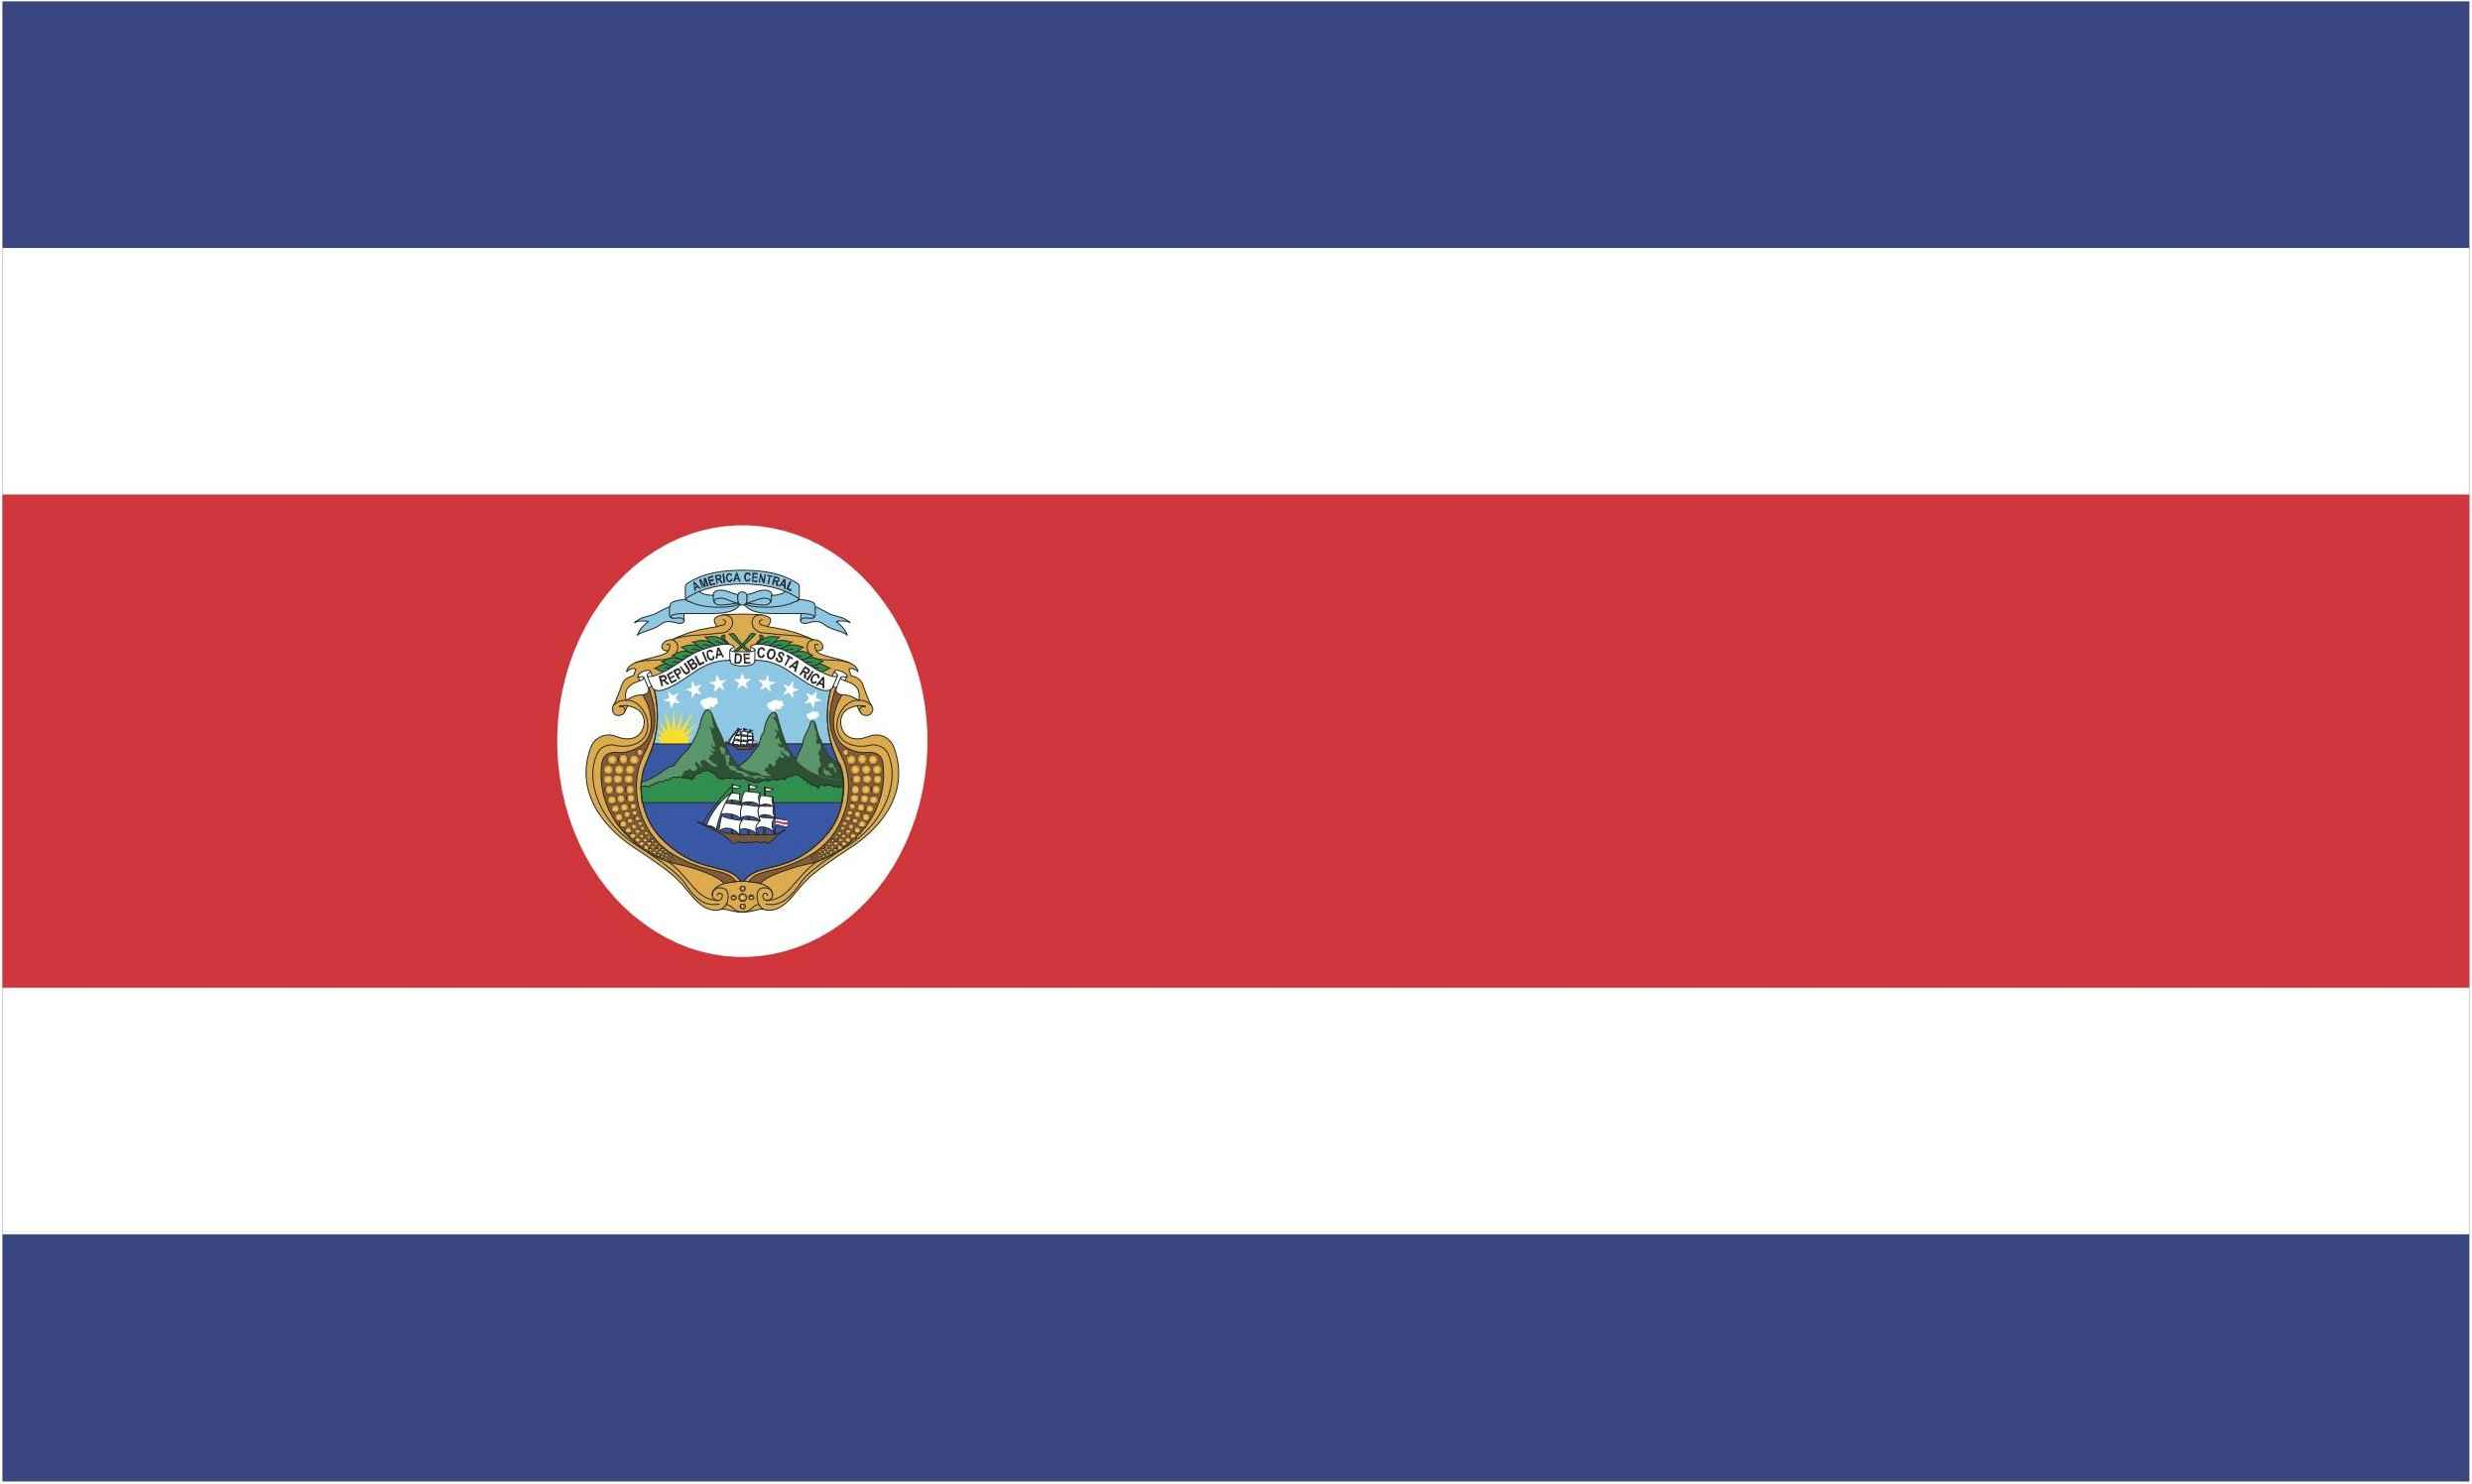 Costa Rica Flag Vector EPS Free Download, Logo, Icons, Brand Emblems